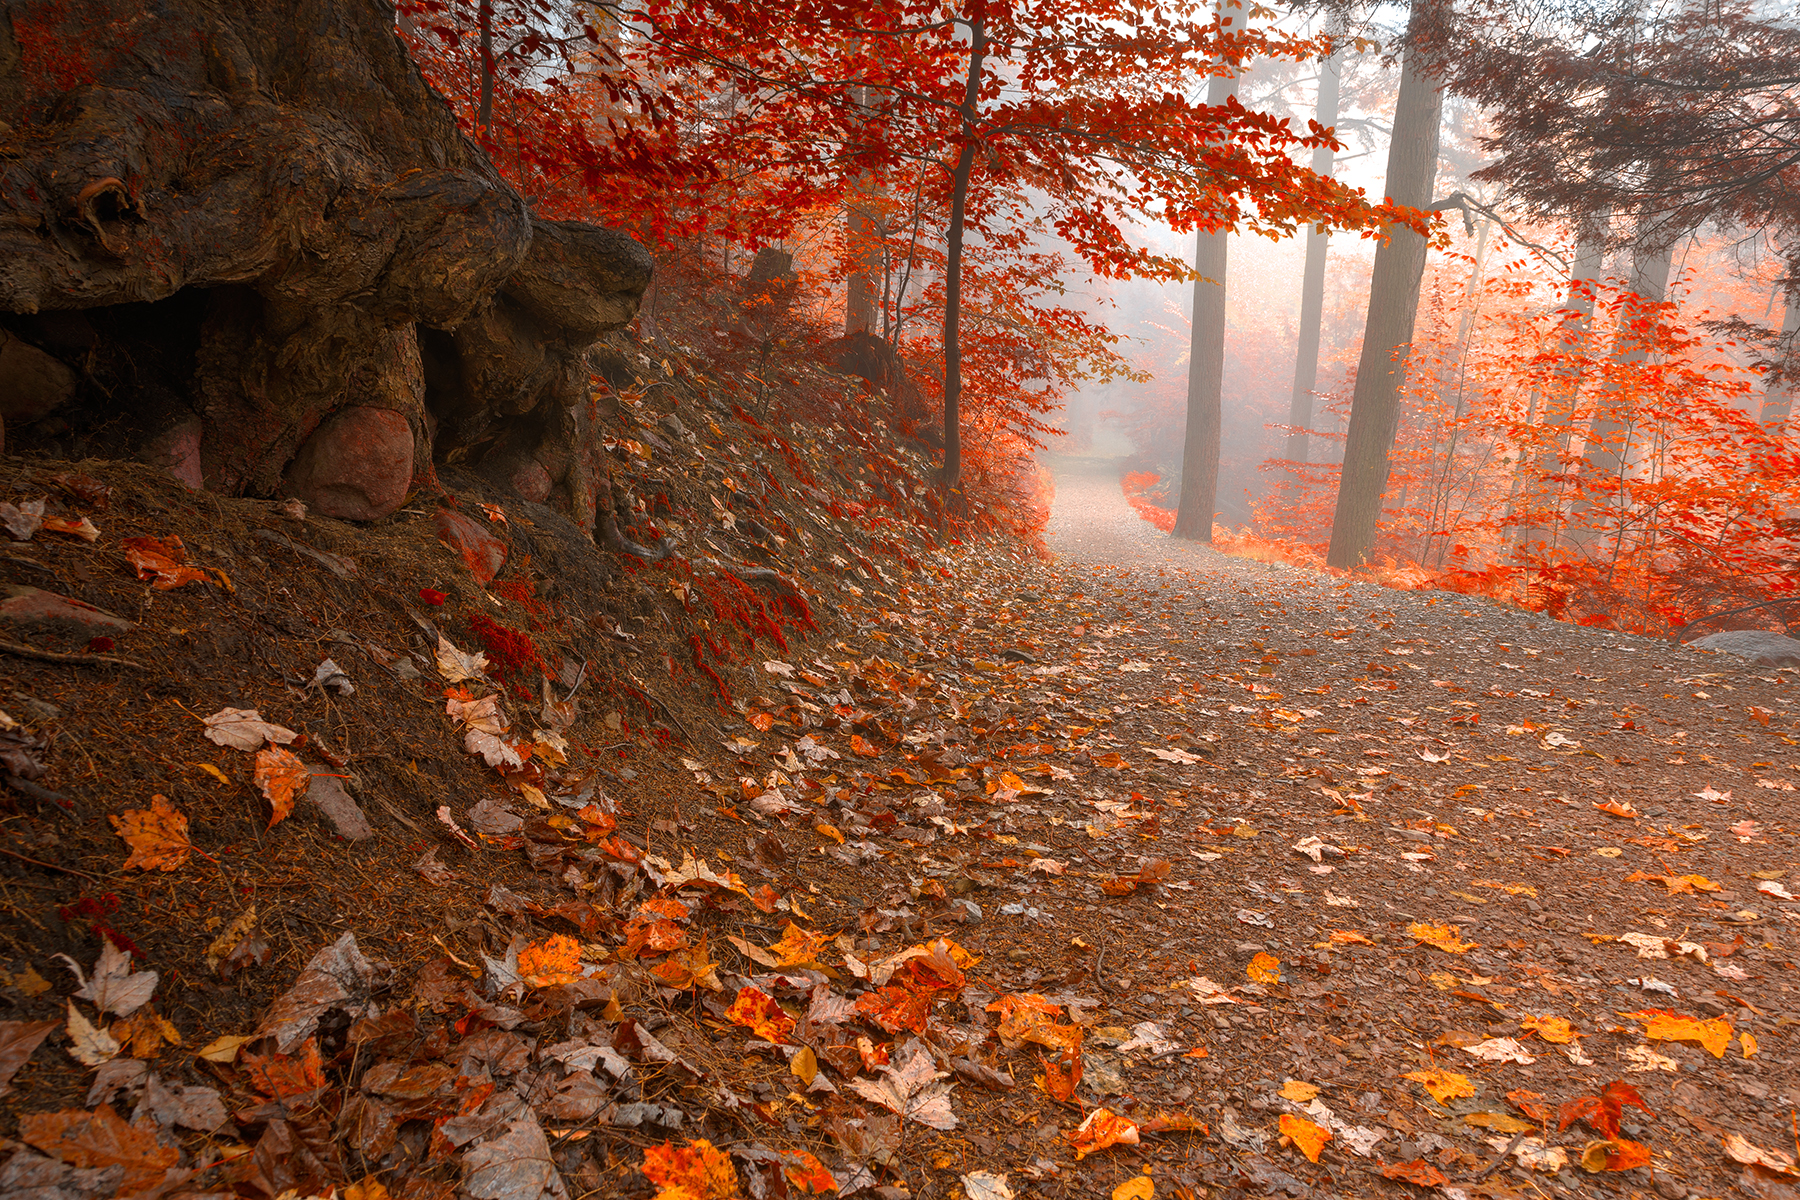 Misty Autumn Wonderland Trail - HDR, Adventure, Park, Recreational, Recreation, HQ Photo